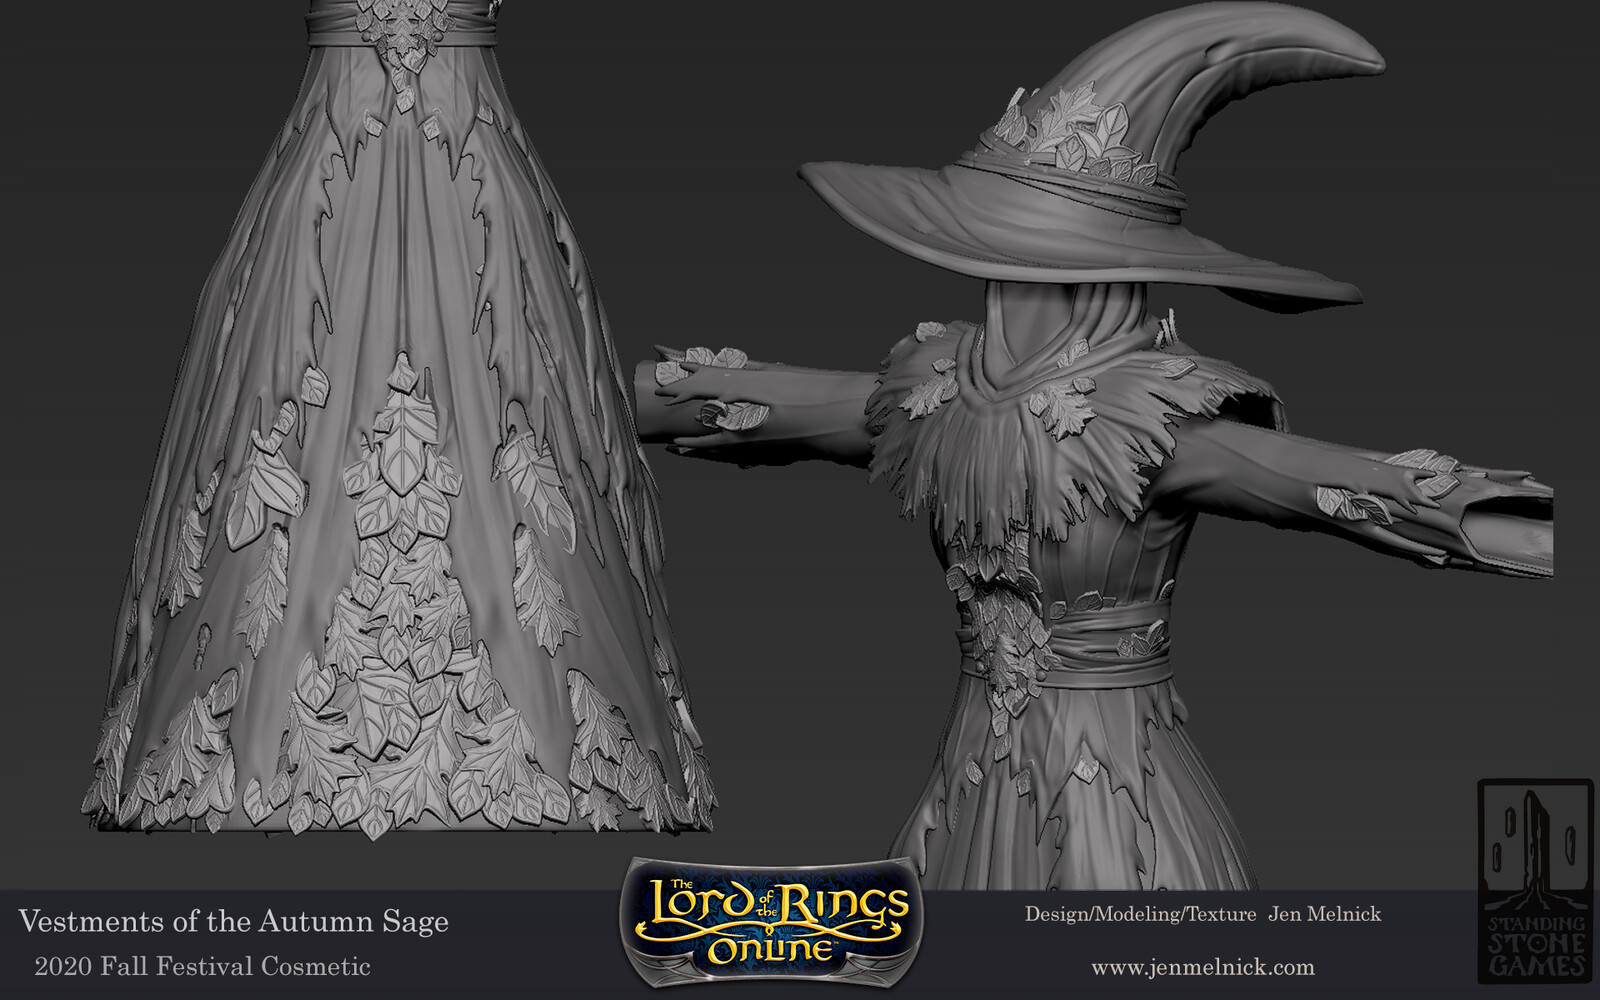 Lord of the Rings Online Vestments of the Autumn Sage Fall Festival 2020 Dress, Shoulders, and Hat sculpts